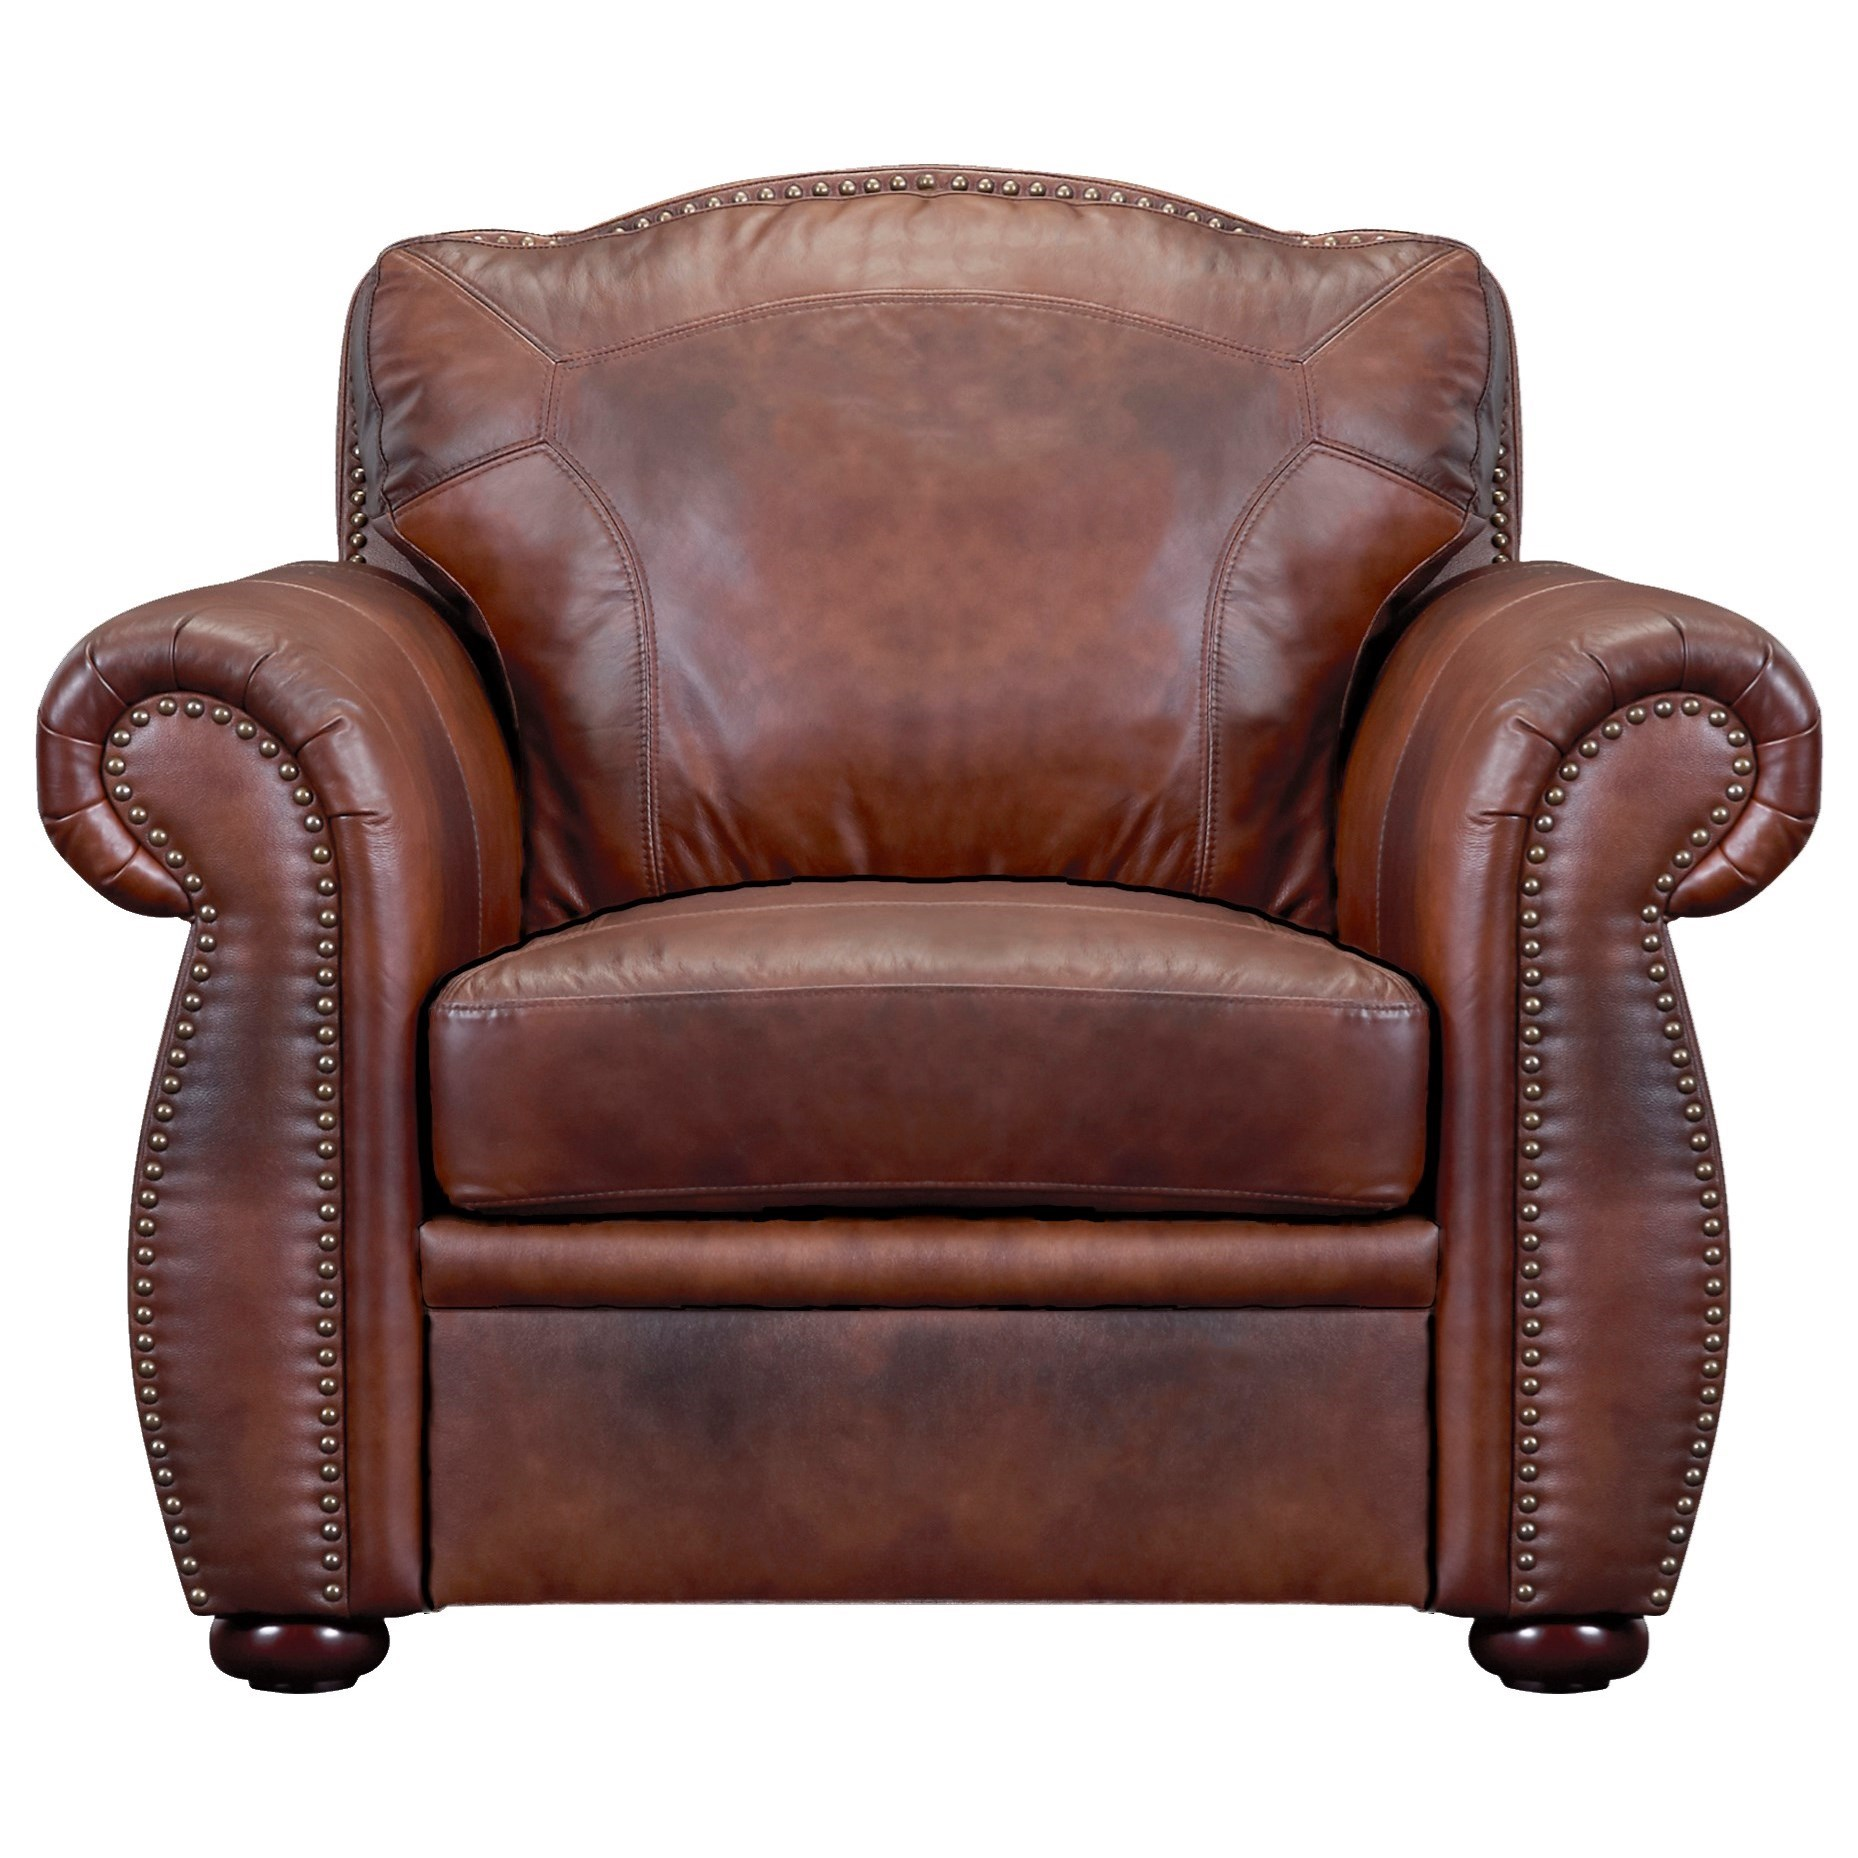 Arizona Leather Chair by Leather Italia USA at Lagniappe Home Store